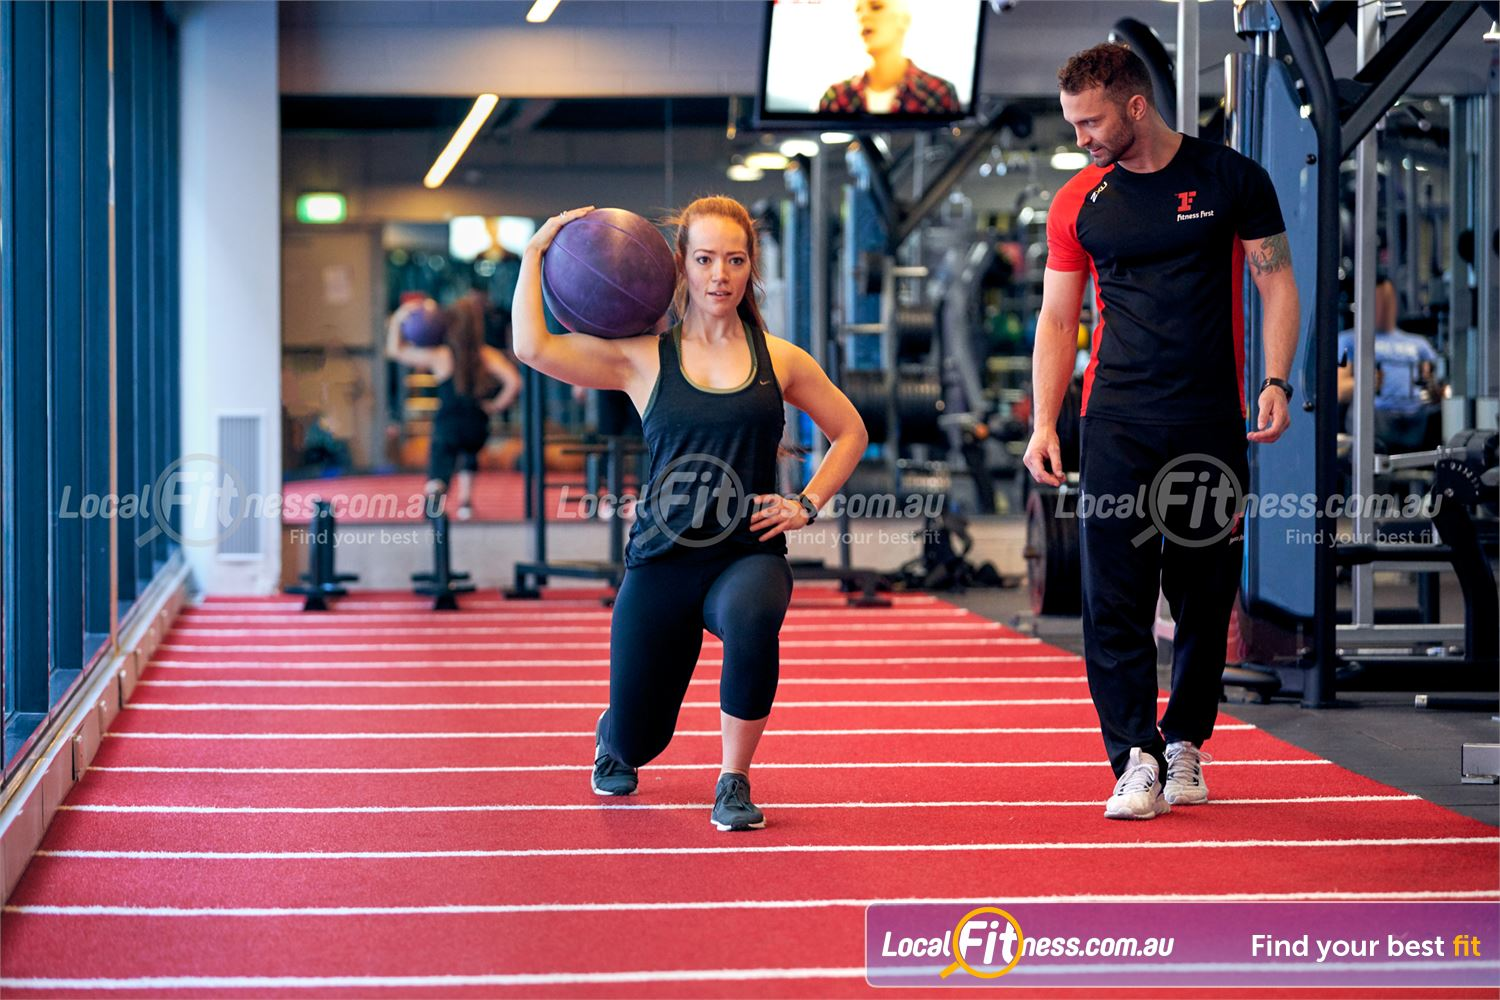 Fitness First Victoria Gardens Near Toorak Indoor speed/agility sled track at Fitness First Richmond gym.